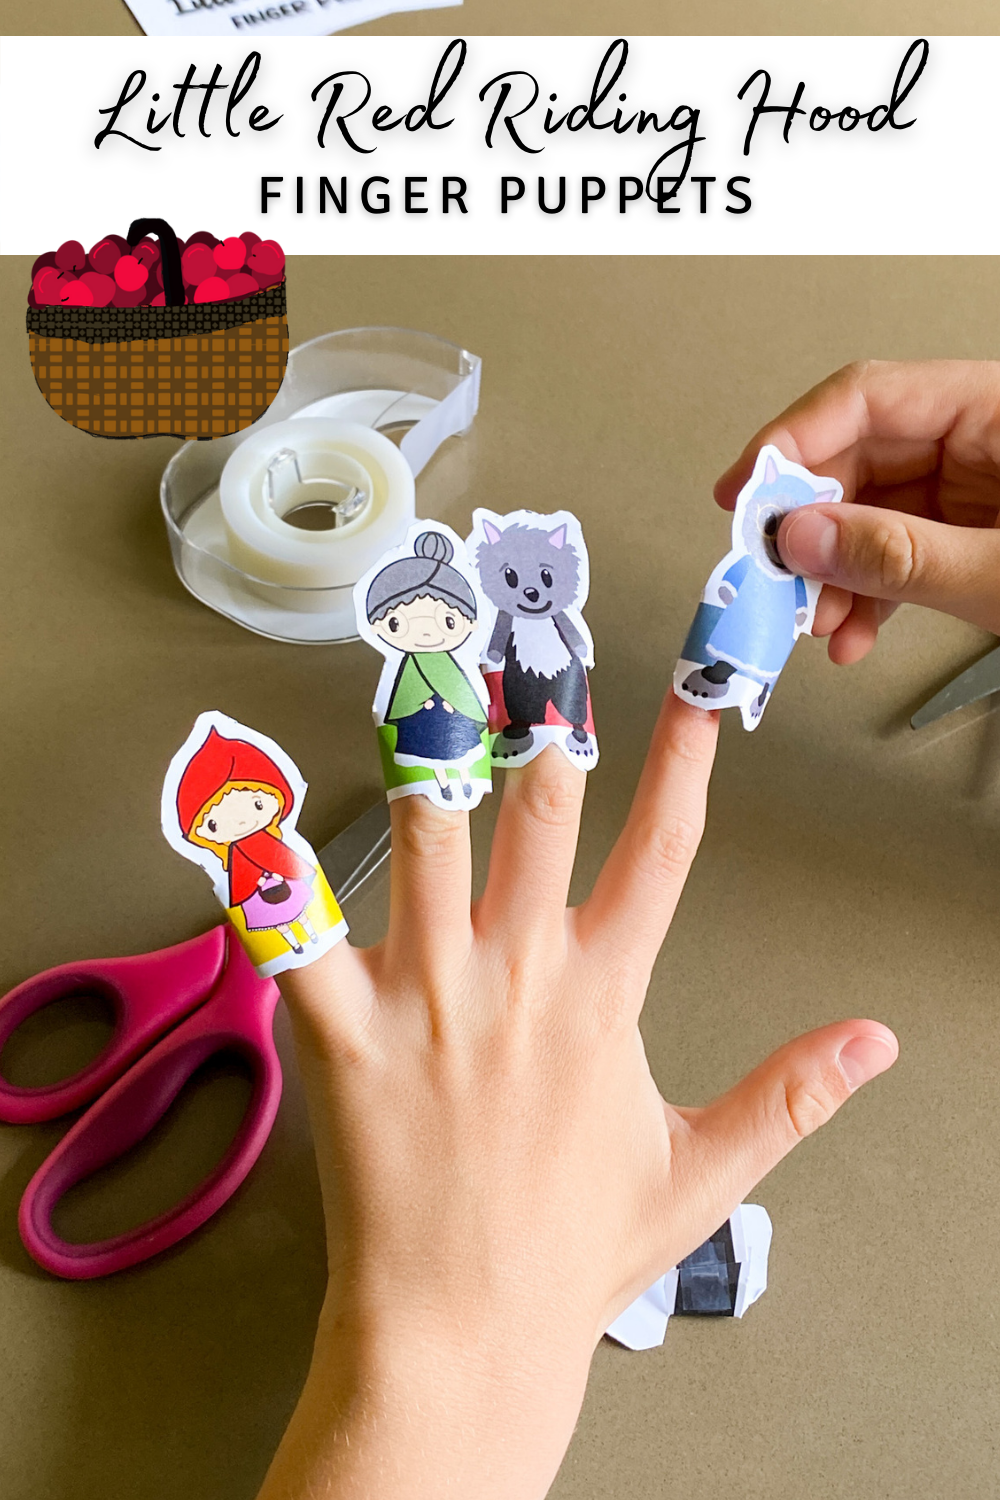 Little Red Riding Hood Finger Puppets PIN 2 png